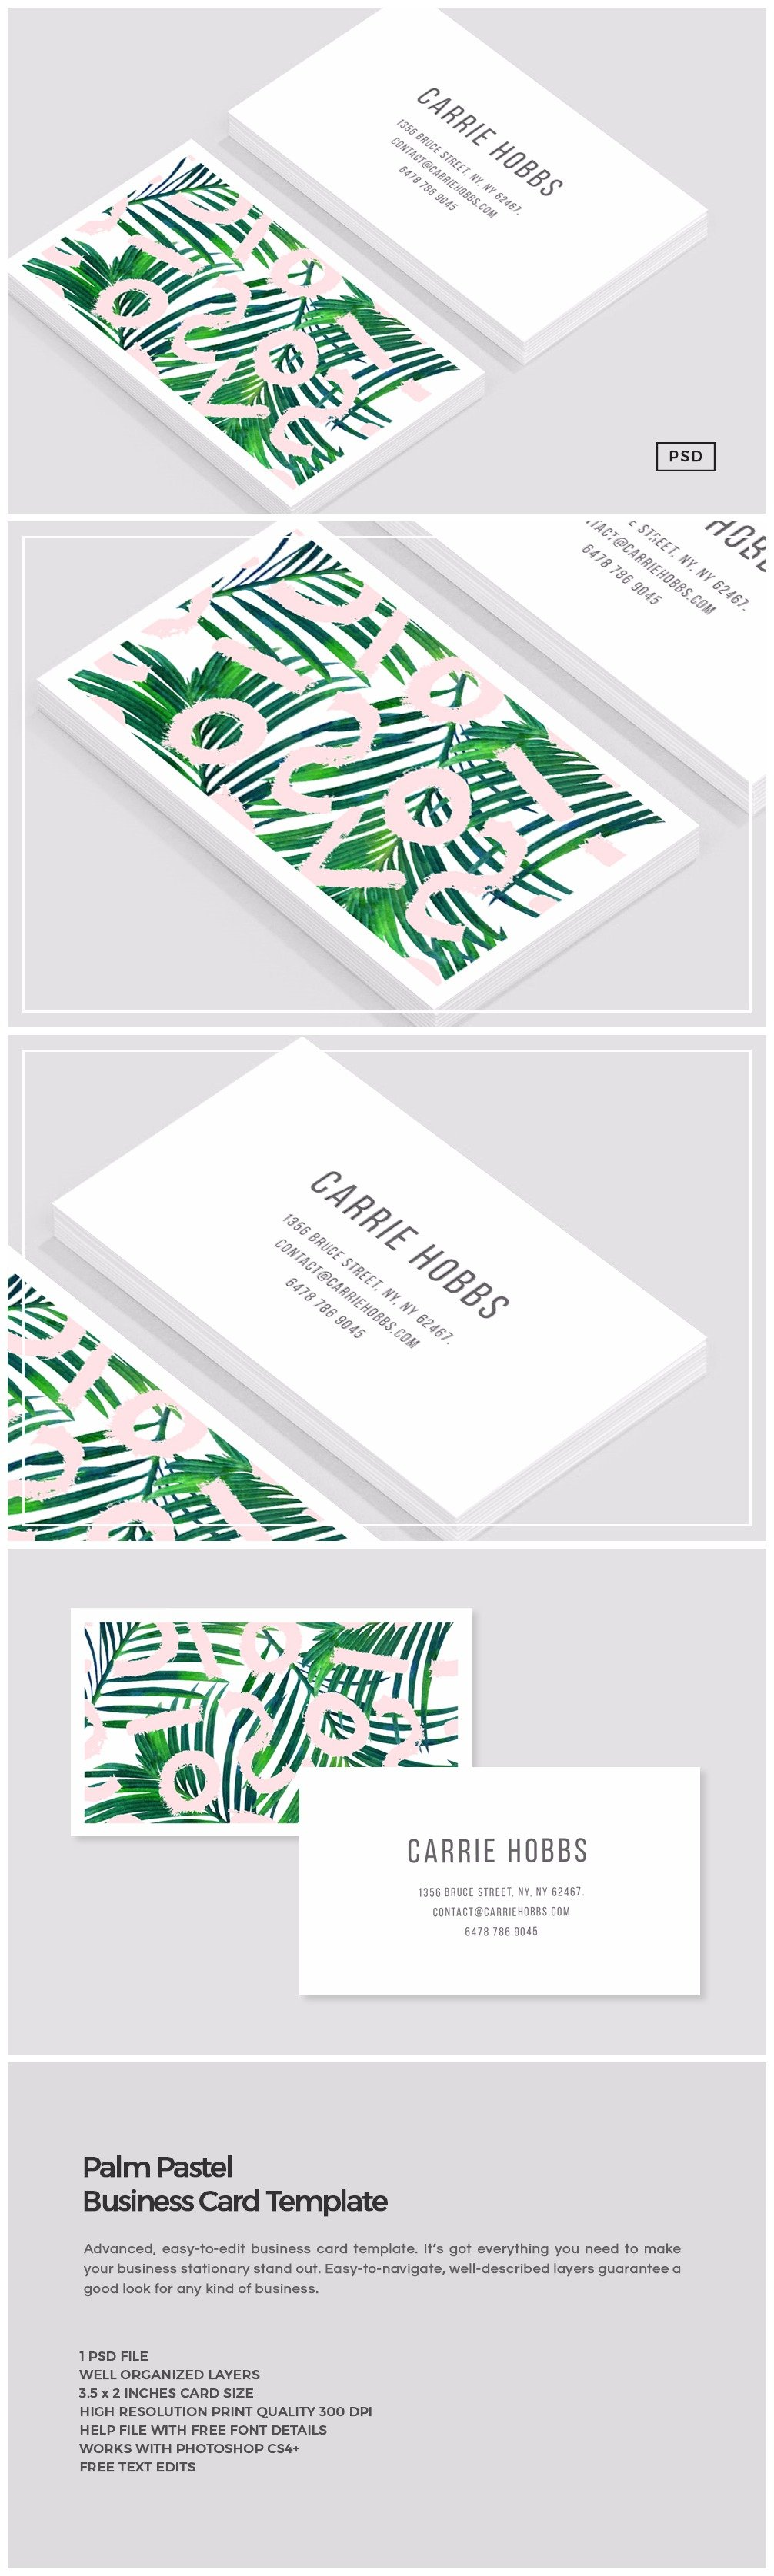 Palm pastel business card template business card templates palm pastel business card template business card templates creative market reheart Gallery